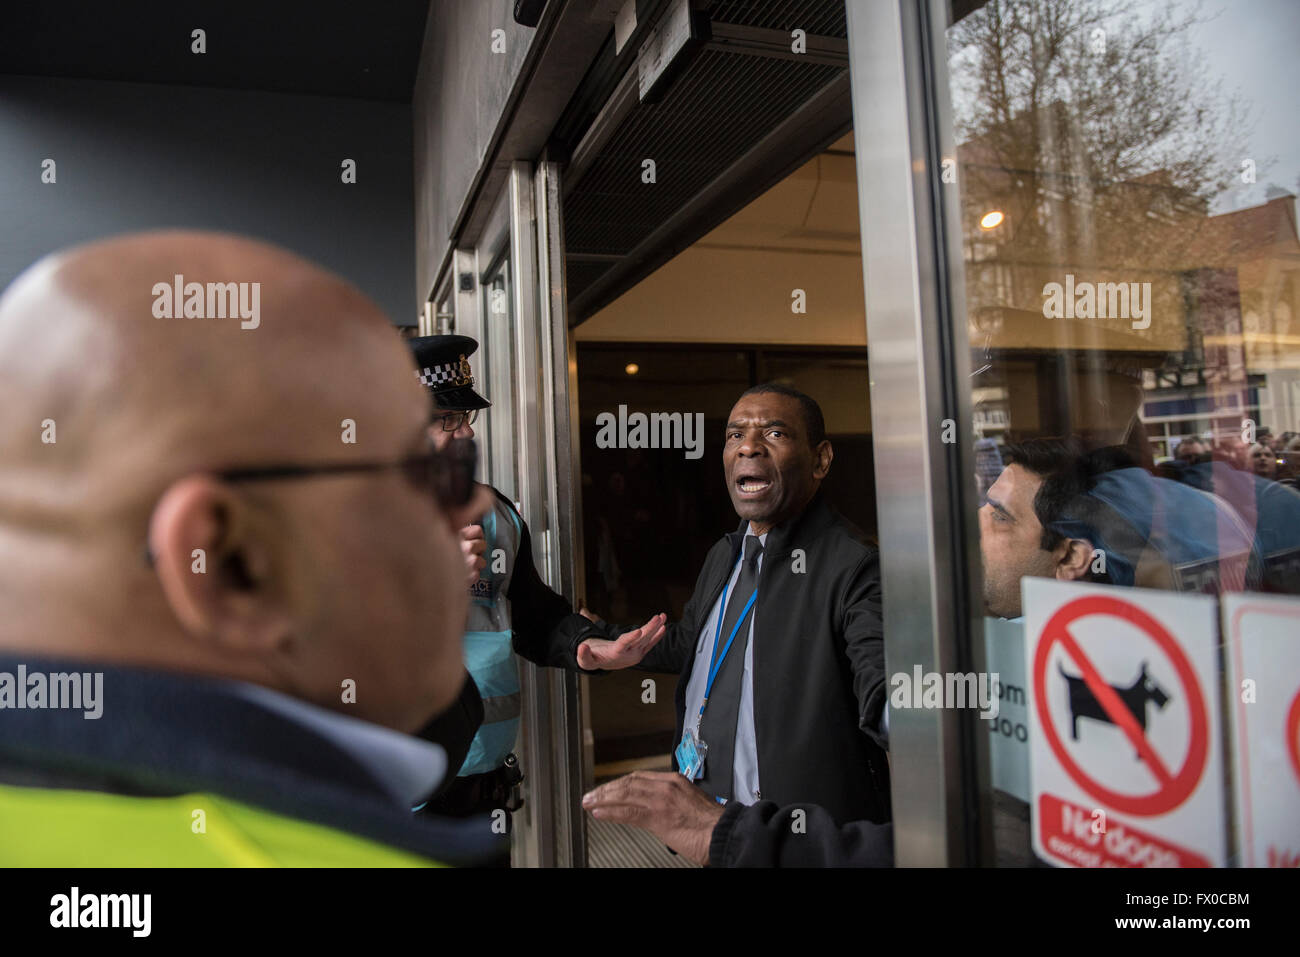 High Wycombe, Buckinghamshire, UK. 9th April 2016. A security guard is ordered to close a shopping mall entrance - Stock Image